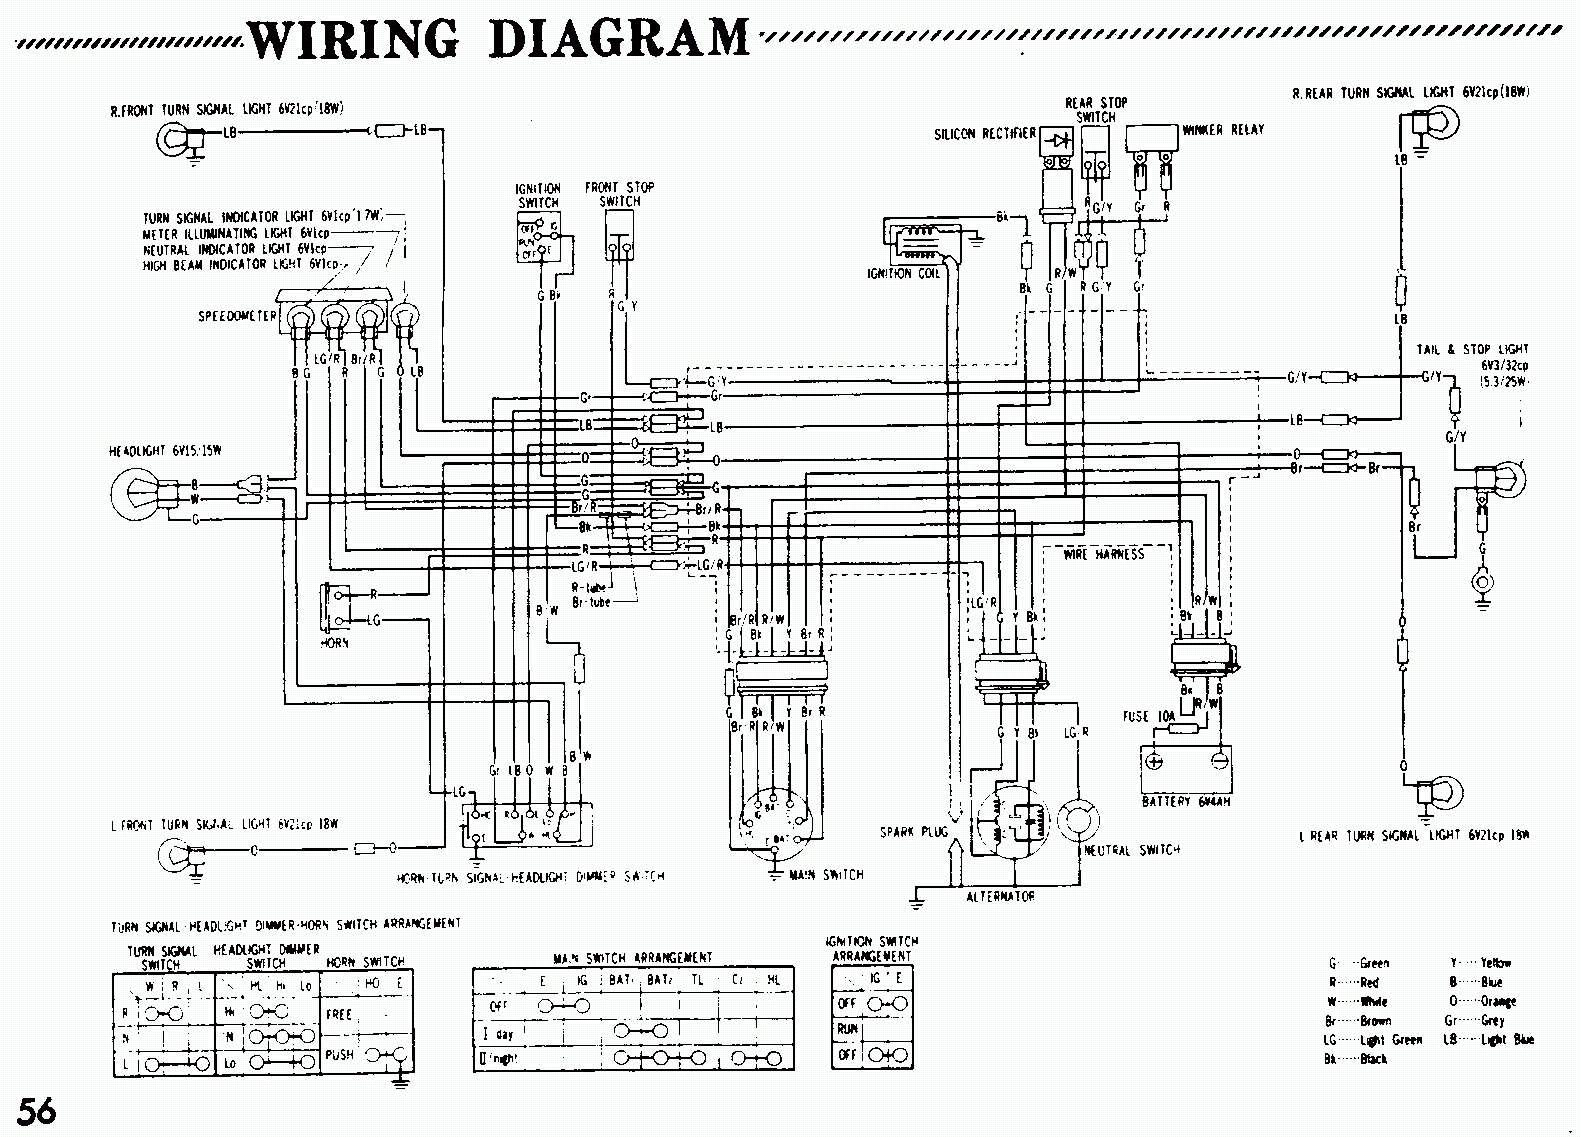 honda ct70 1976 wiring diagram ct70 stator wiring diagram honda ct70 wiring diagram \u2022 free wiring ct70 wiring harness at webbmarketing.co